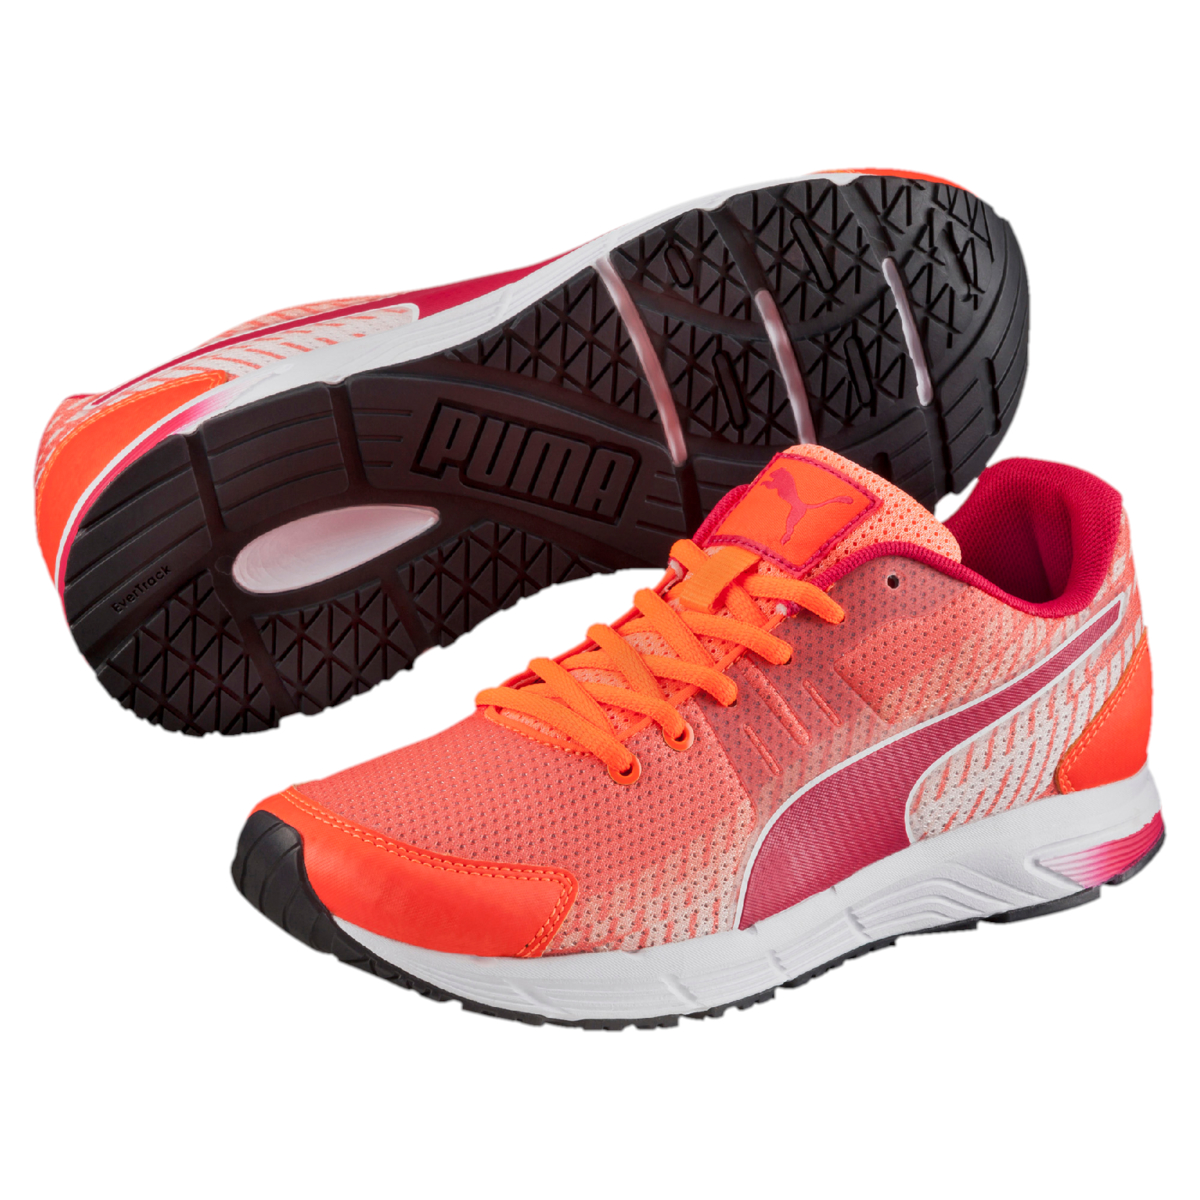 puma sequence v2 ladies running shoes 7 uk best uk prices